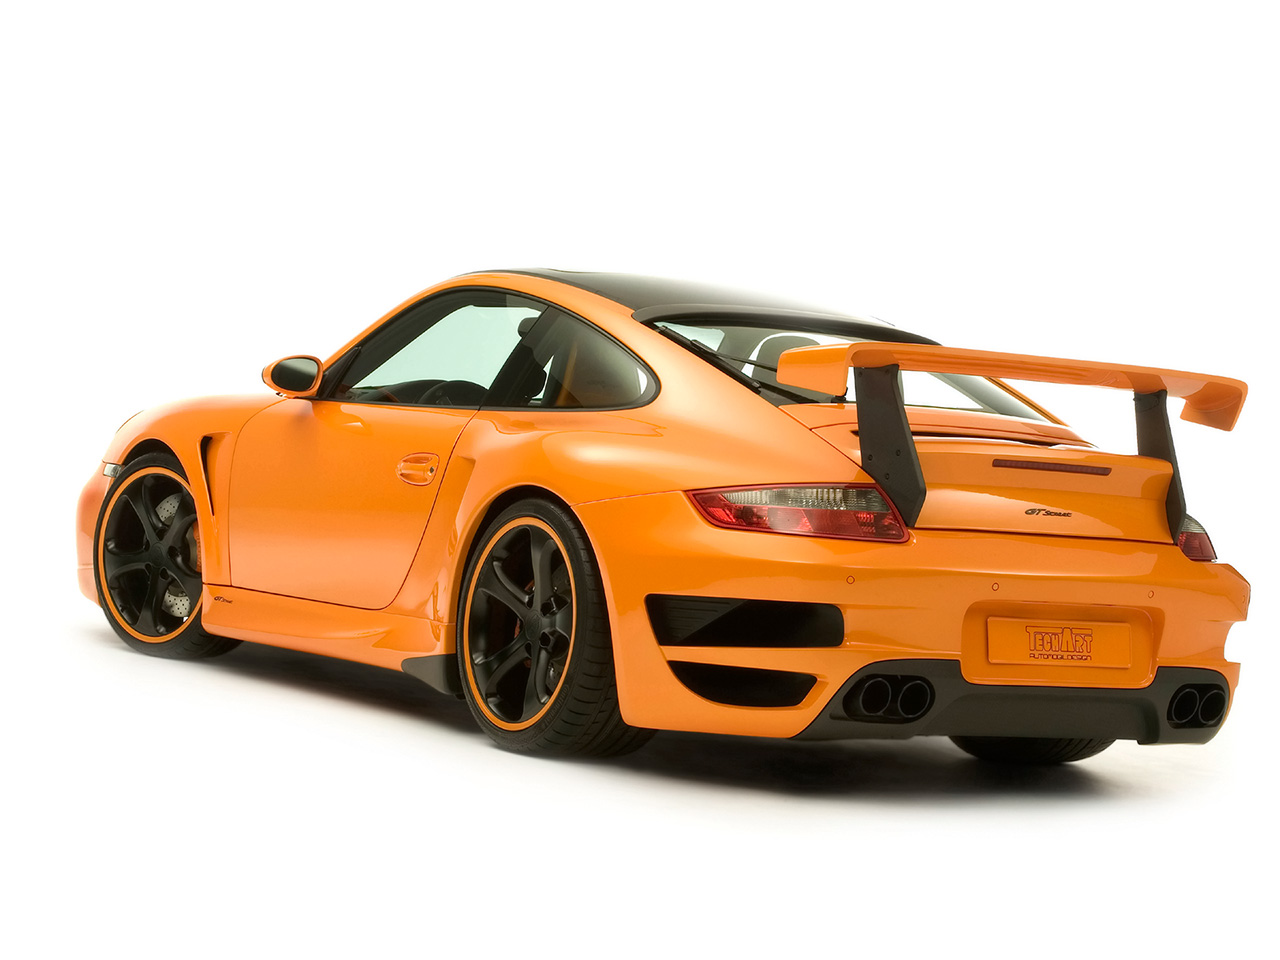 A Convertible Porsche 911 997 Turbo A Orange Porsche 911 997 Turbo ...